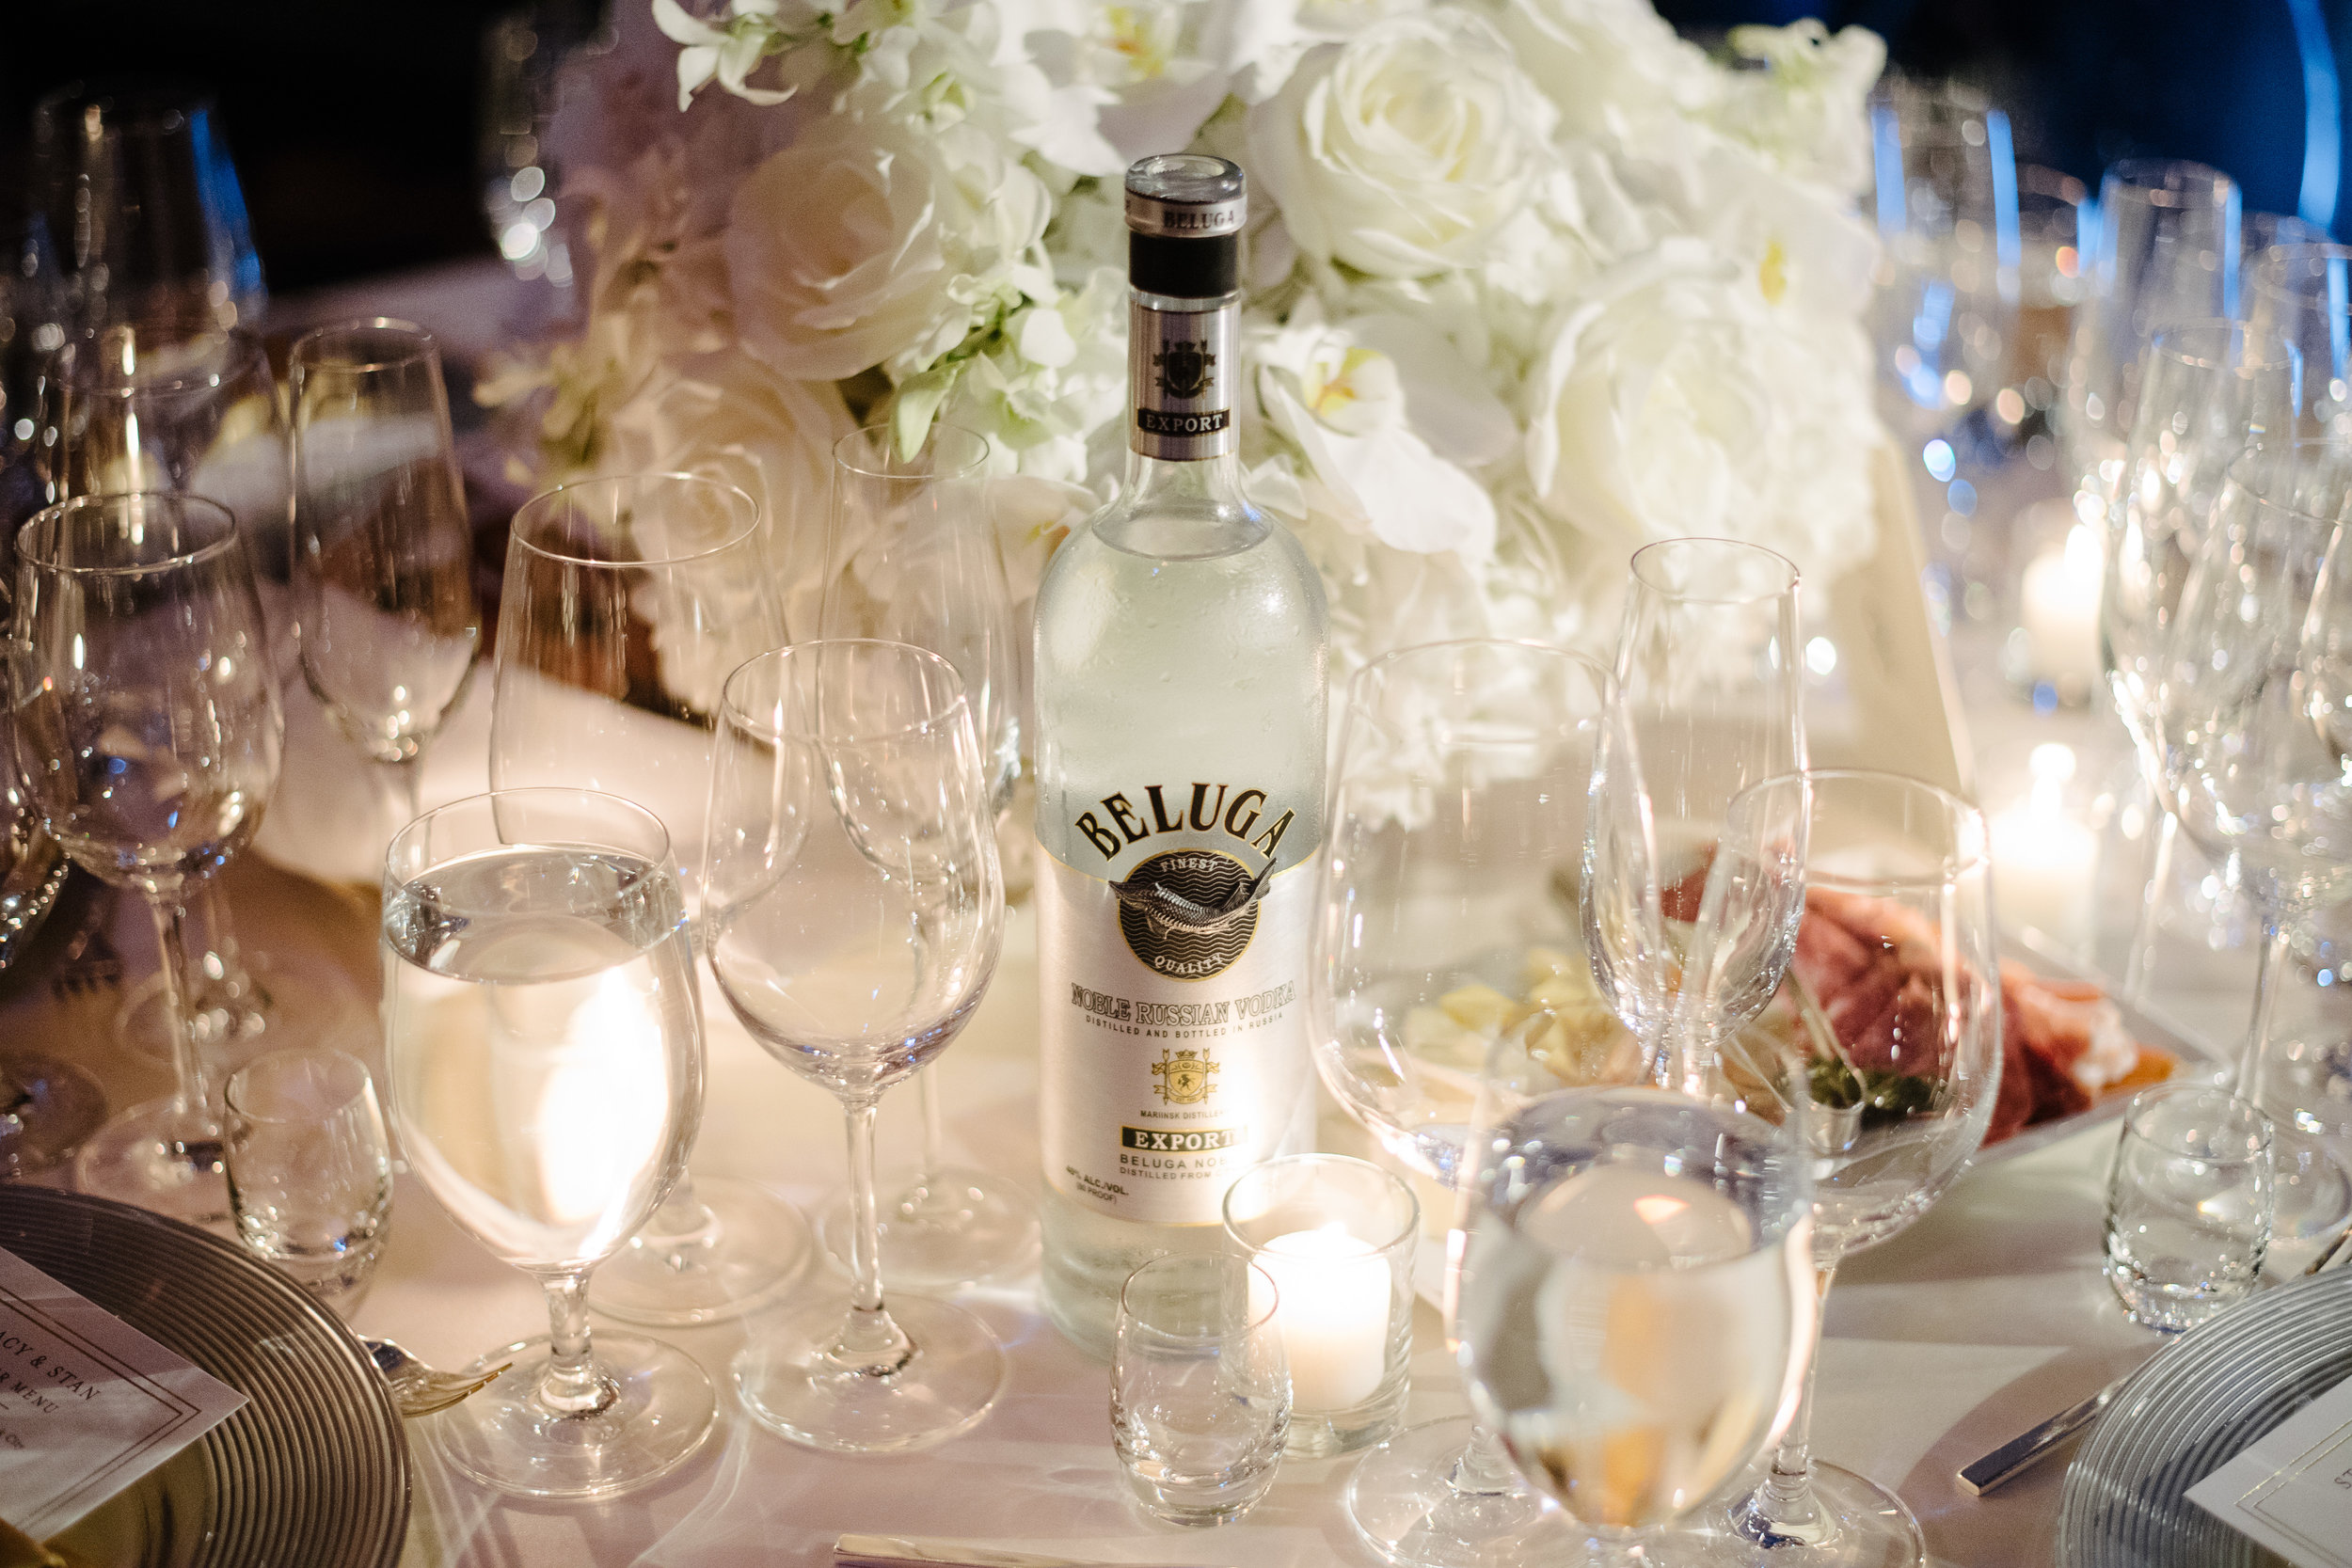 New-York-Wedding-Mandarin-Oriental-Andrea-Freeman-Events-19.jpg